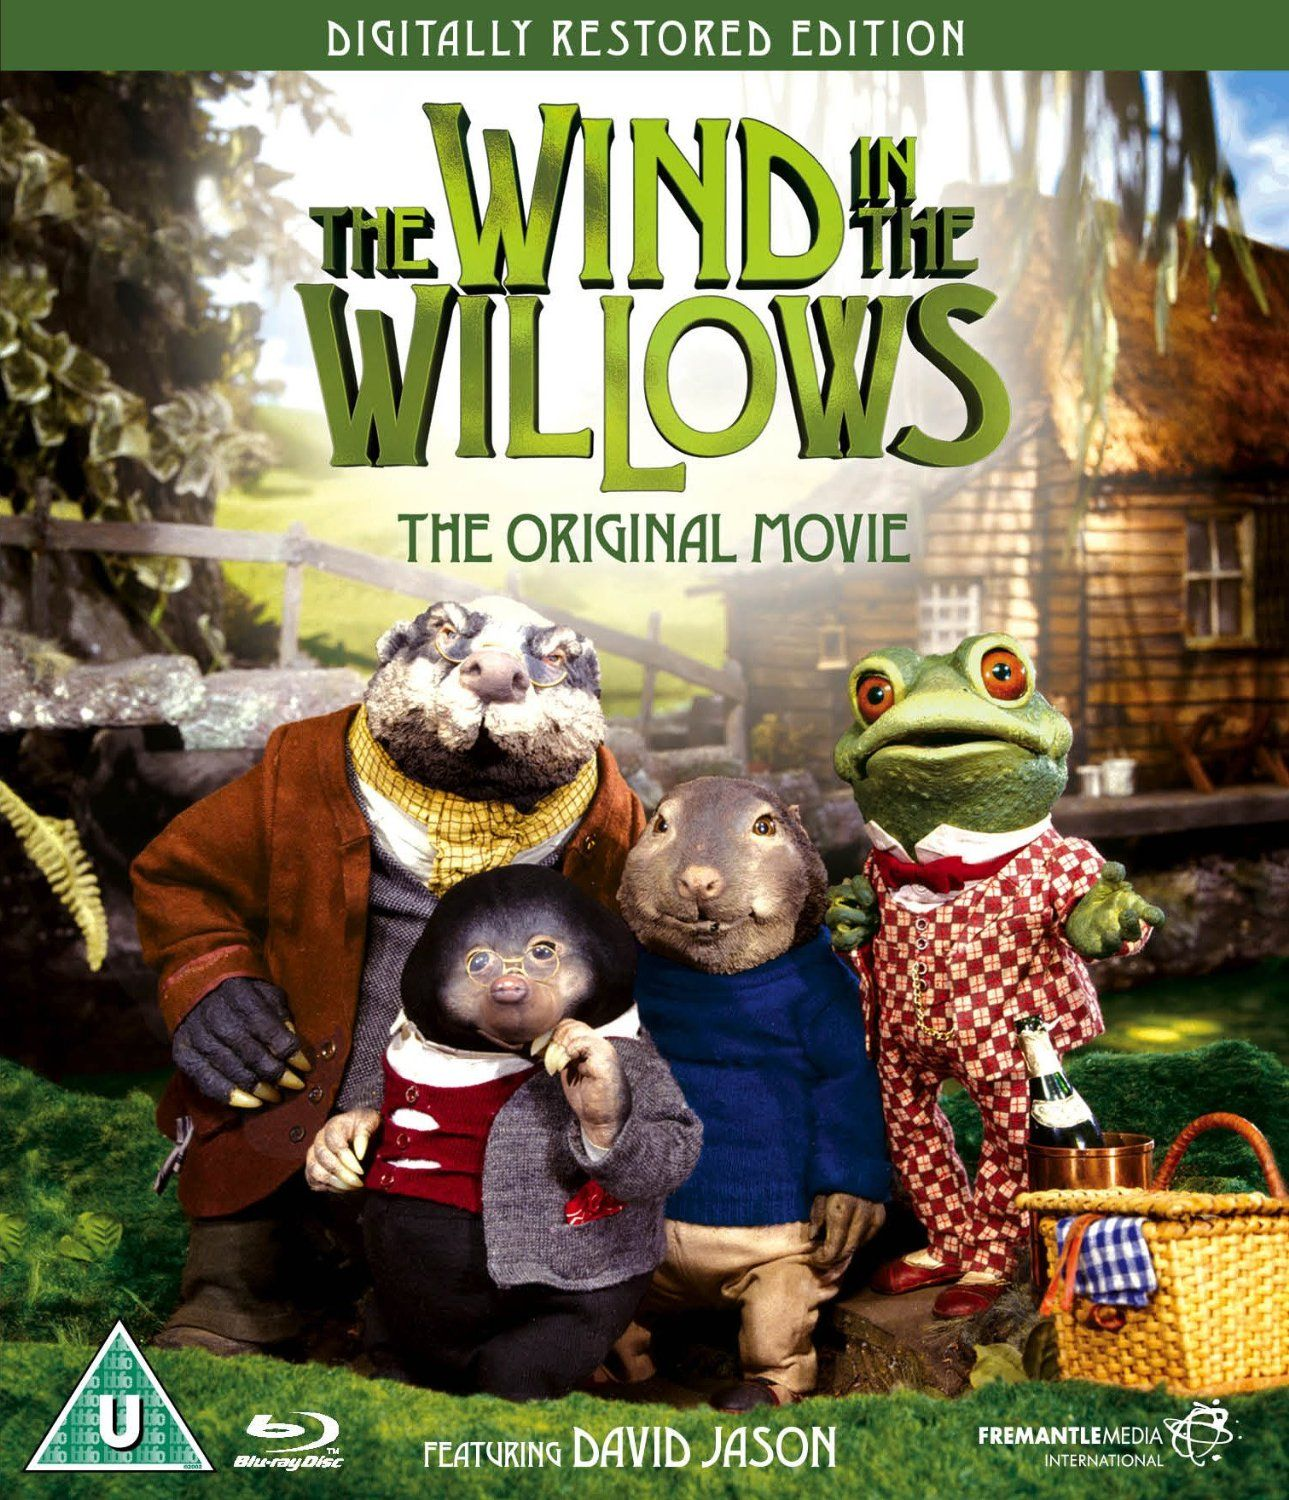 Wind in the willows ornaments - The Wind In The Willows